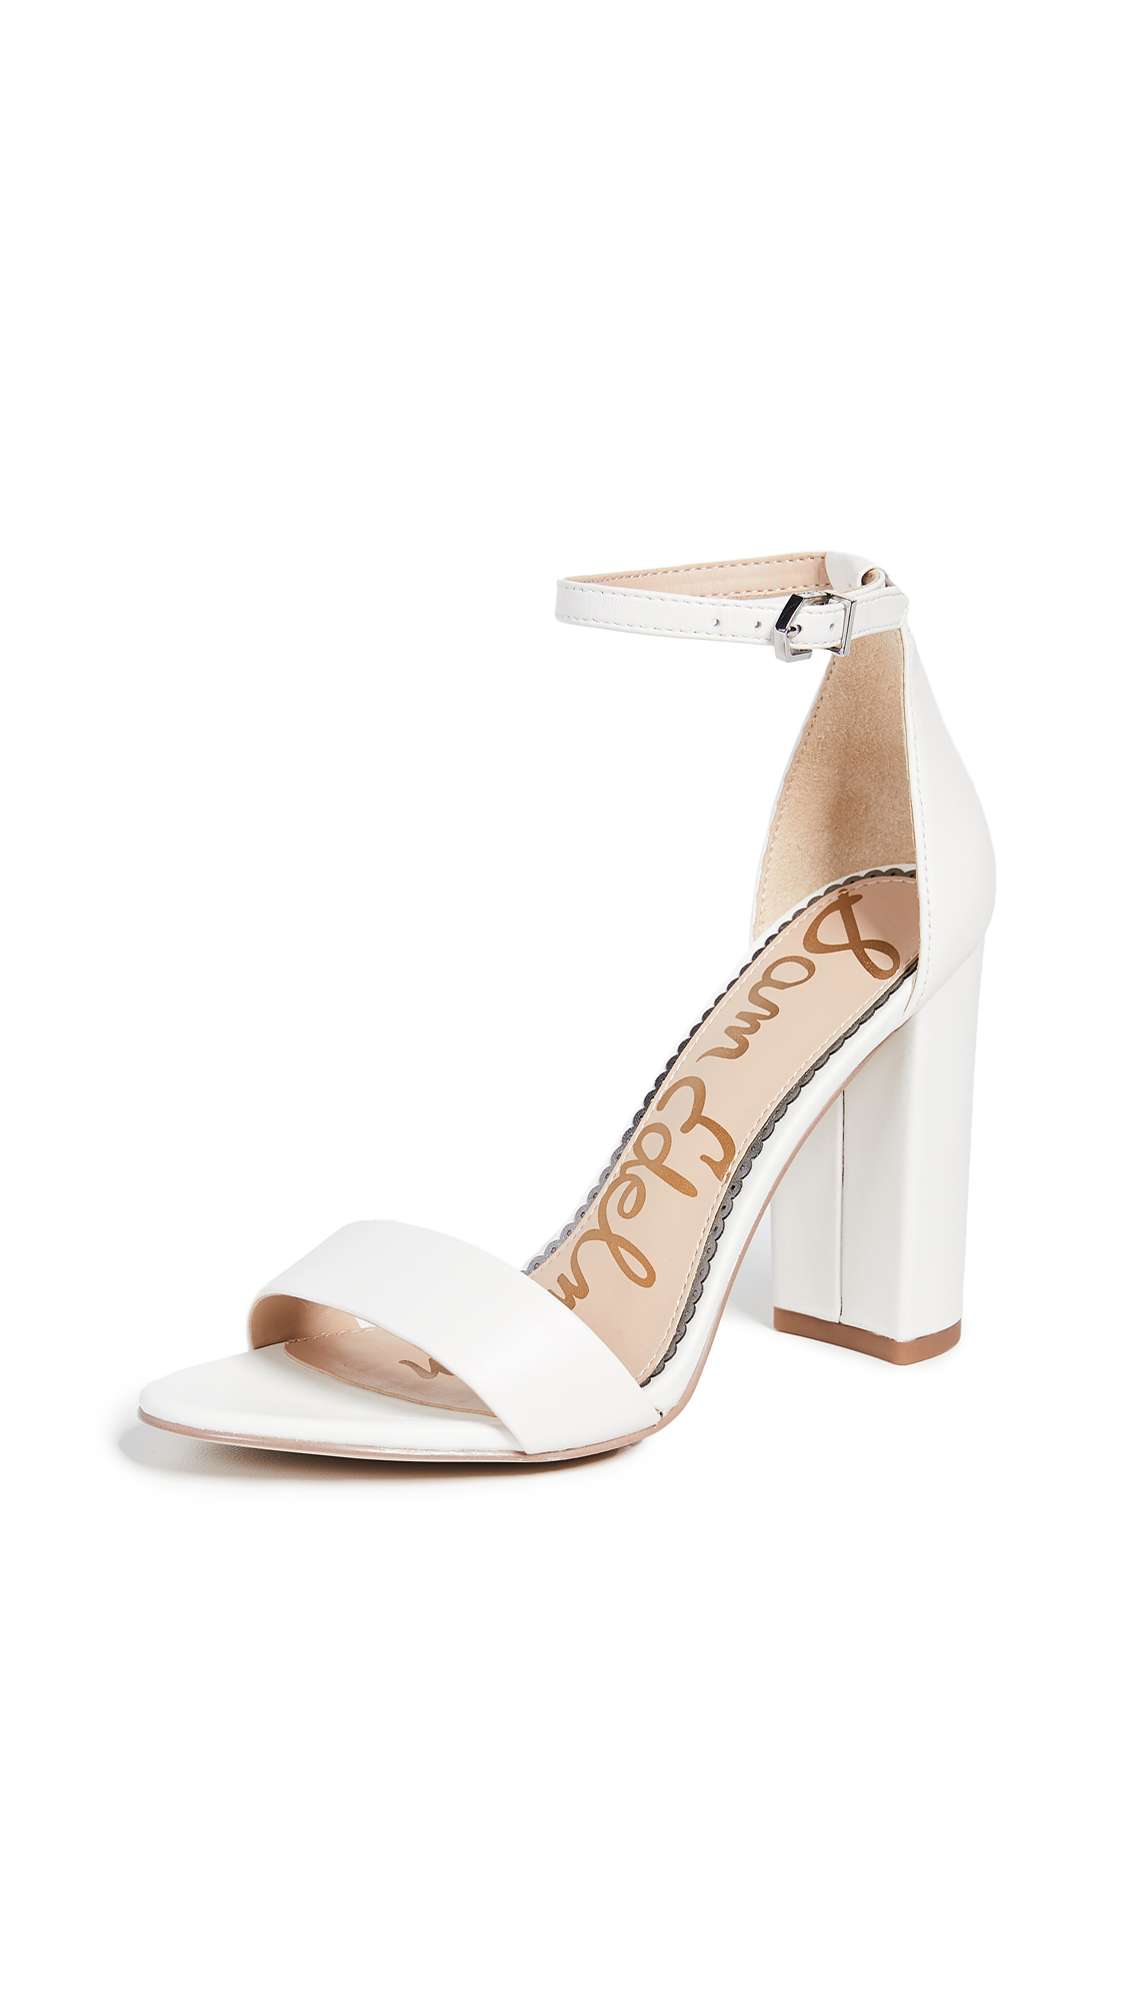 Sam Edelman Yaro Sandals - Bright White